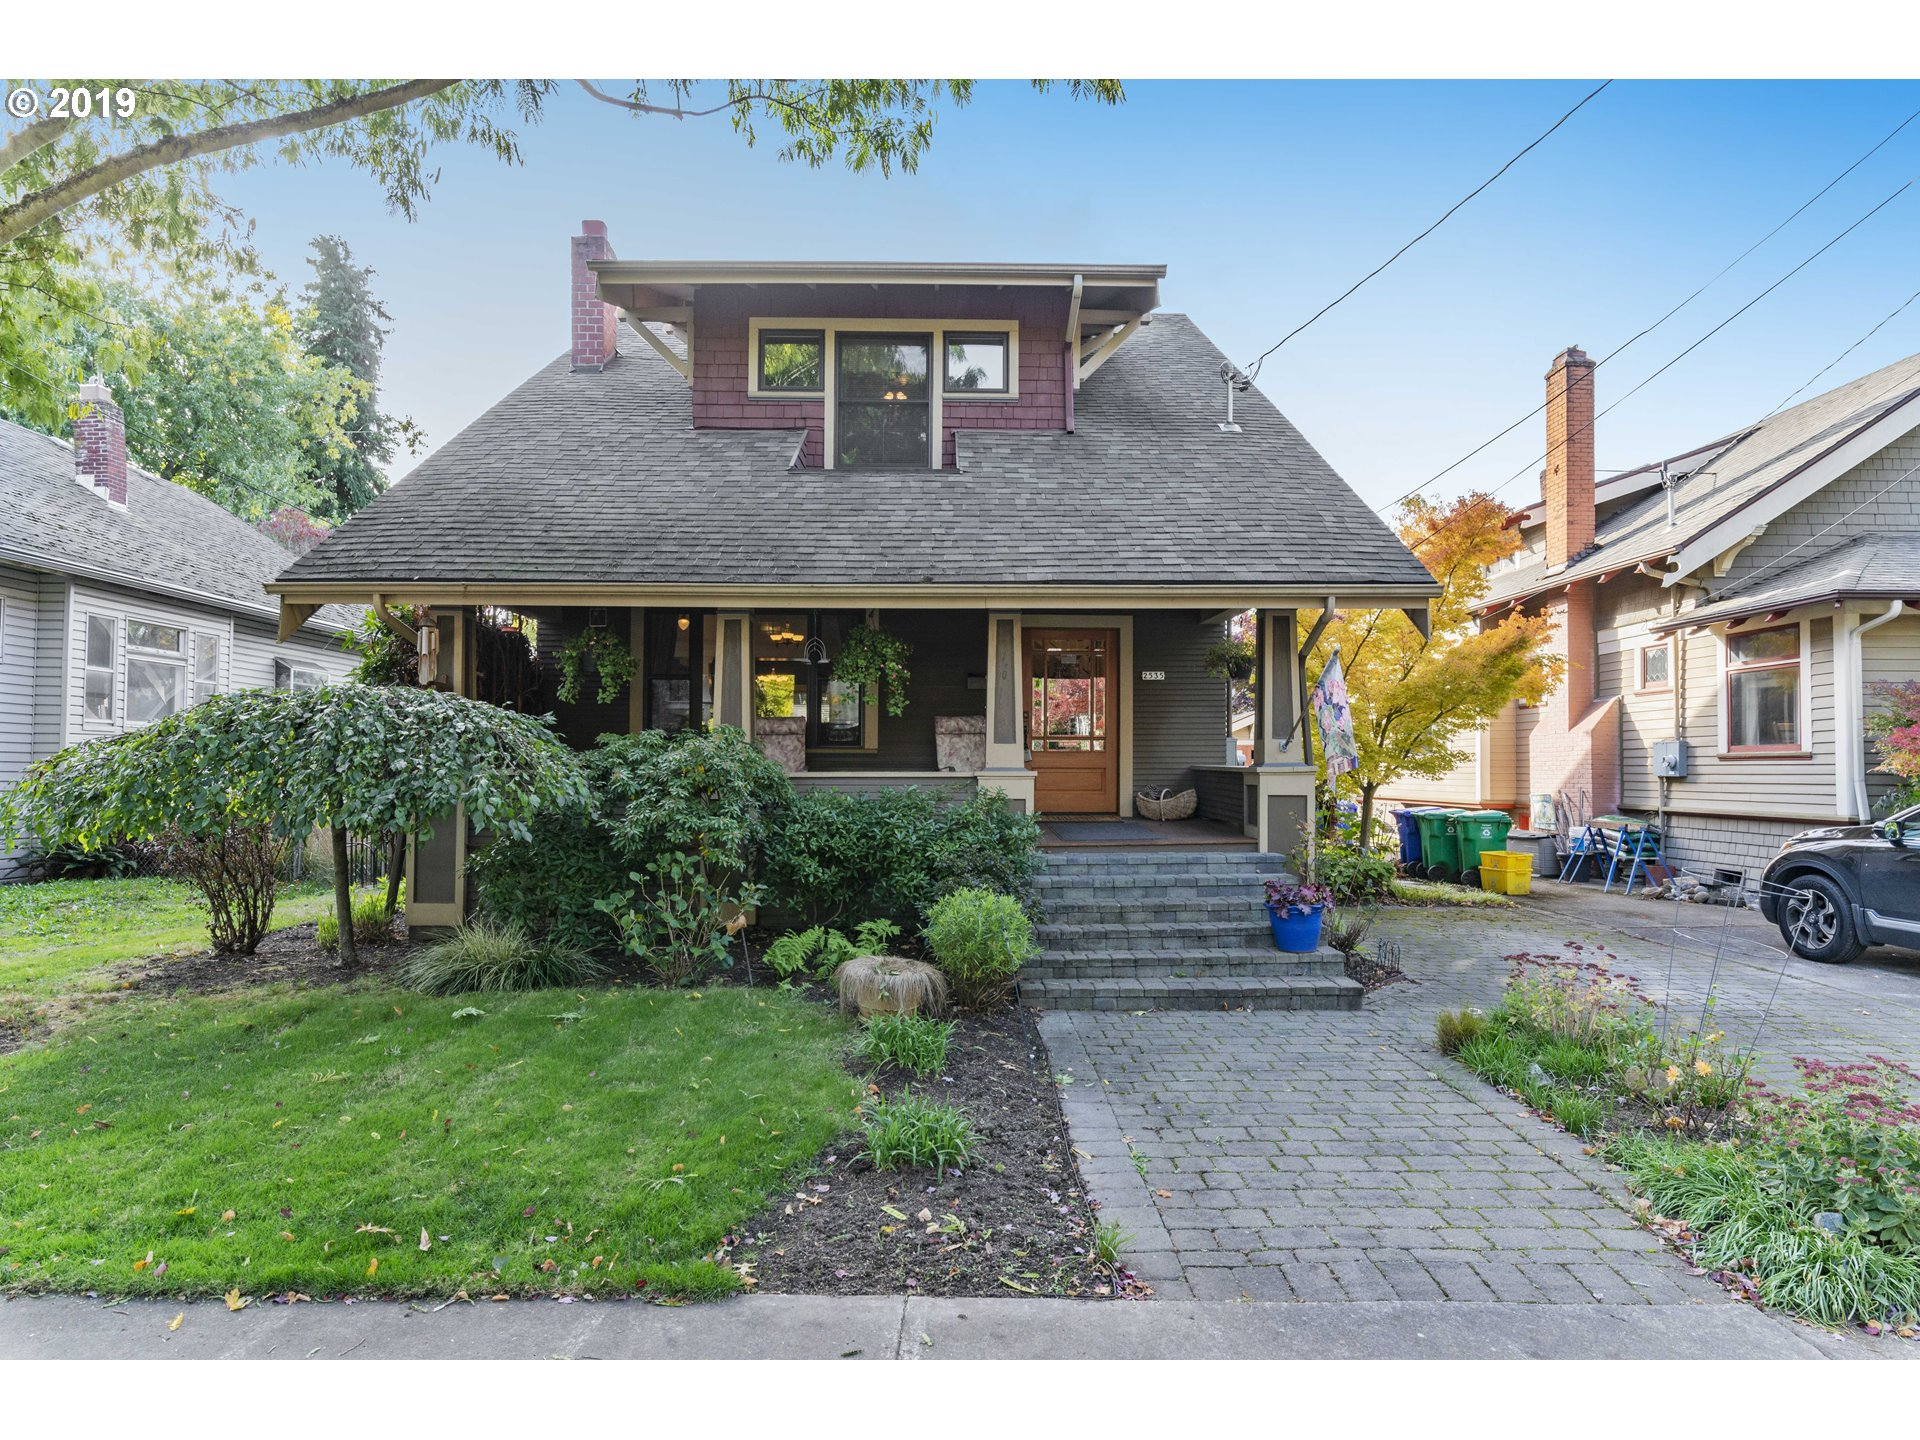 Gorgeous Grant Park home that welcomes you at every turn! This space has been beautifully updated throughout while retaining the refinished woods and original charm that makes this home a true Portland classic. Enjoy the private, picturesque backyard, deck and patio, stunning kitchen plus extra basement space. Walk to Grant Park and Beverly Cleary Sculpture Garden!  Open houses Sat/Sun 12/7-12/8, 10am-2pm.